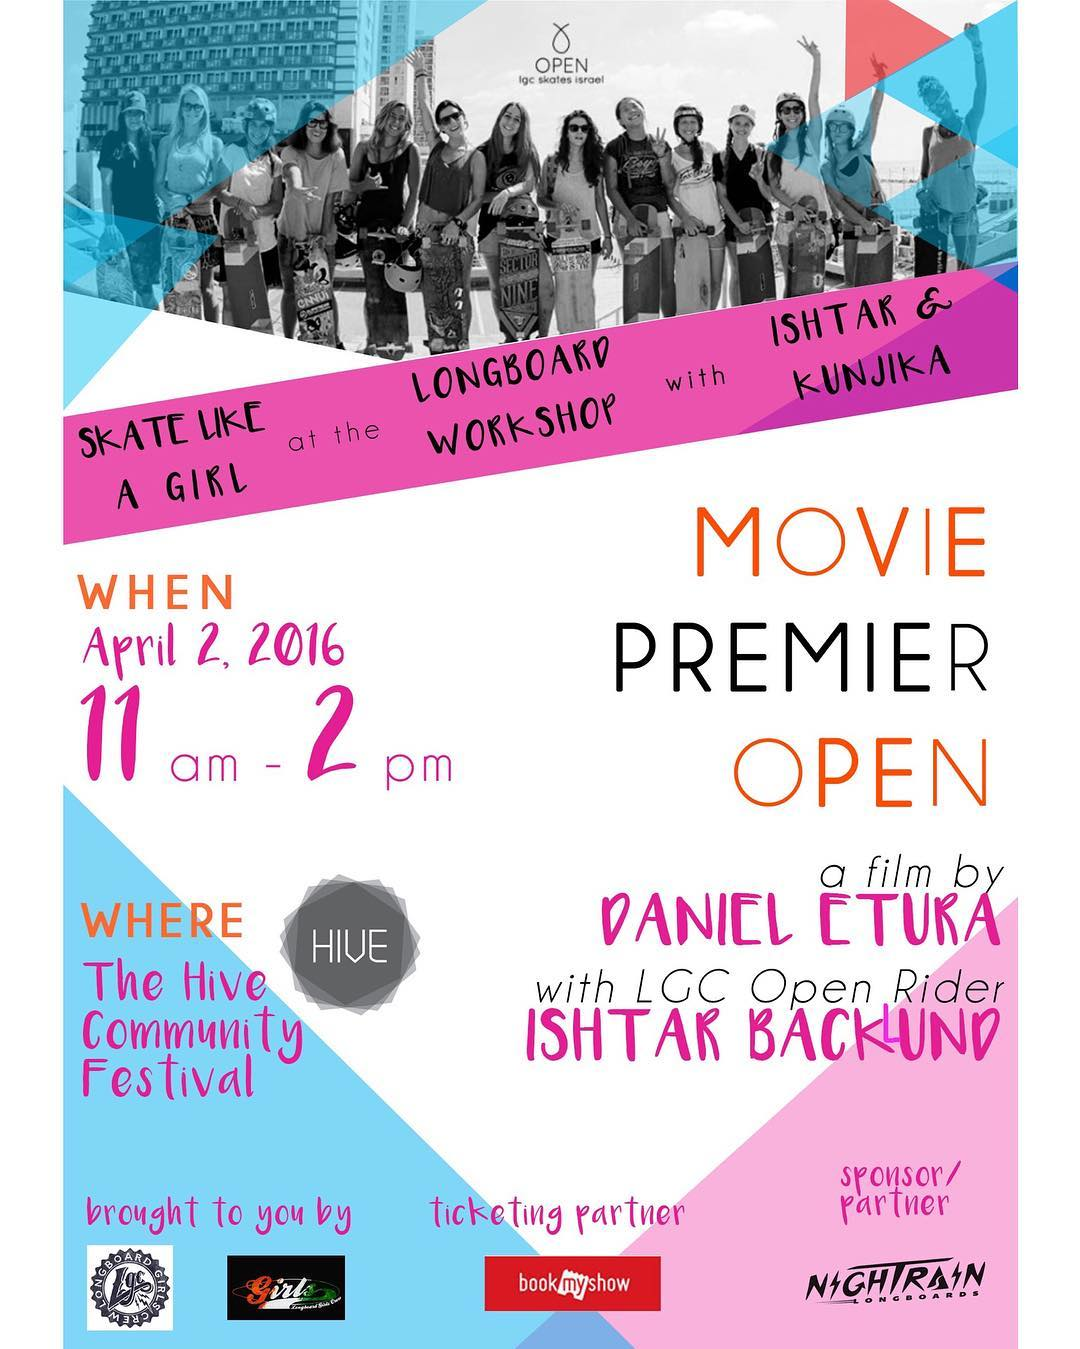 We're over the moon to announce INDIA's OPEN premiere this Saturday April 2 and a workshop hosted by LGC OPEN rider @ishtiish and LGC Indian Ambassador @kunjikaa In Bombay!